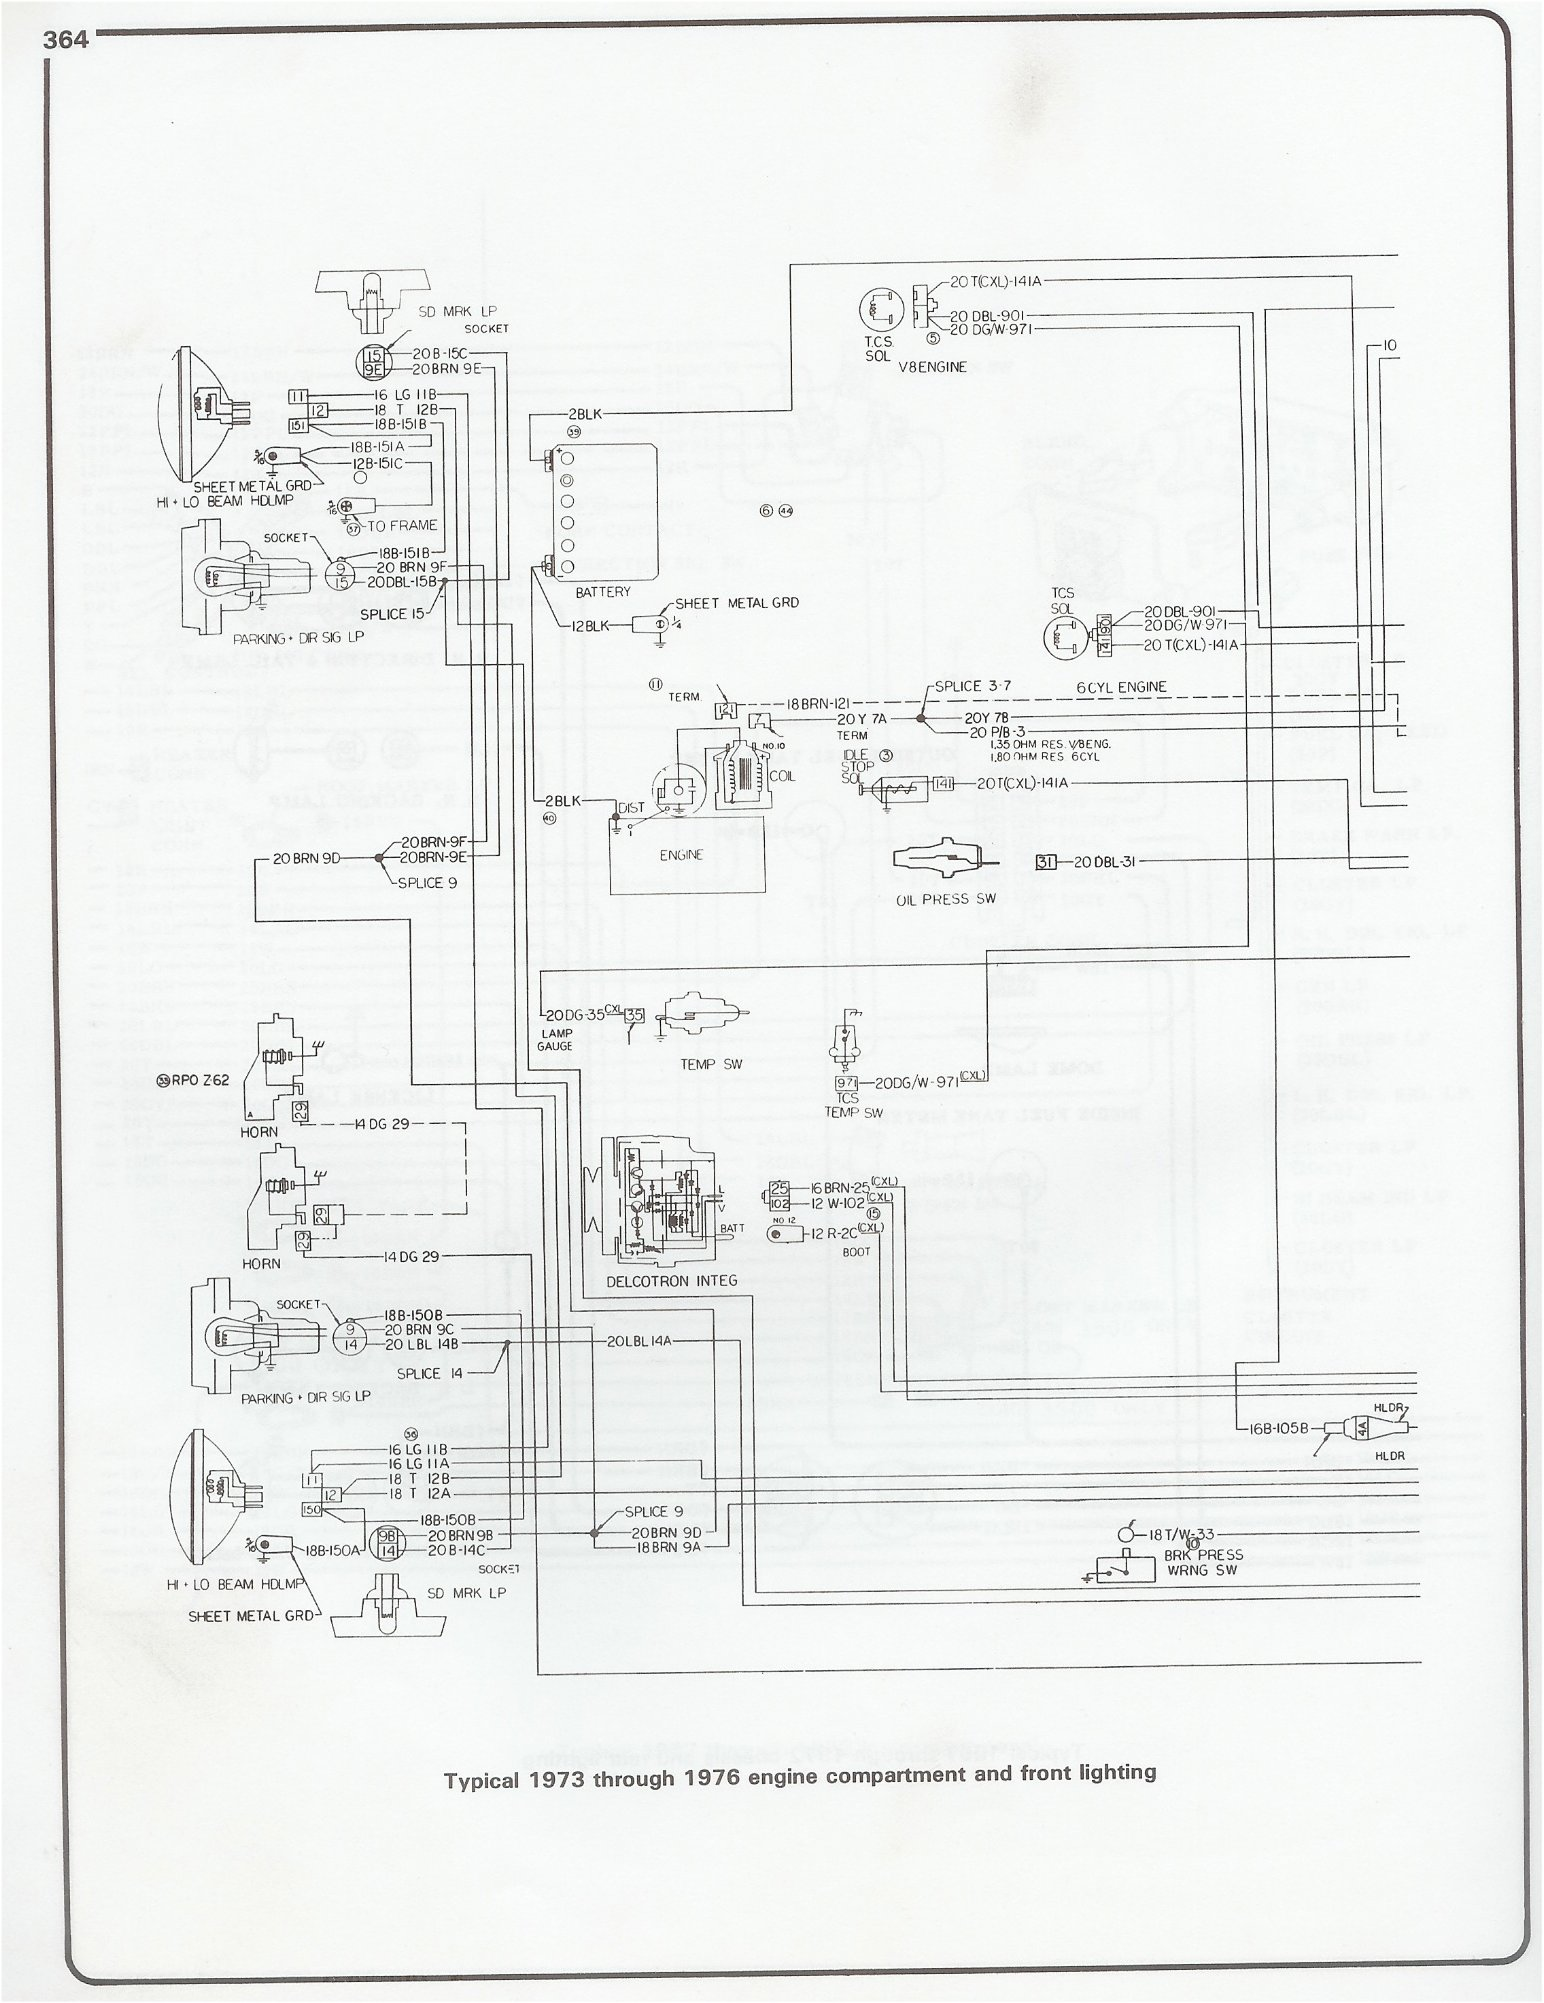 C20sel Looking For Wiper And Pump Diagram Or Help With Problems